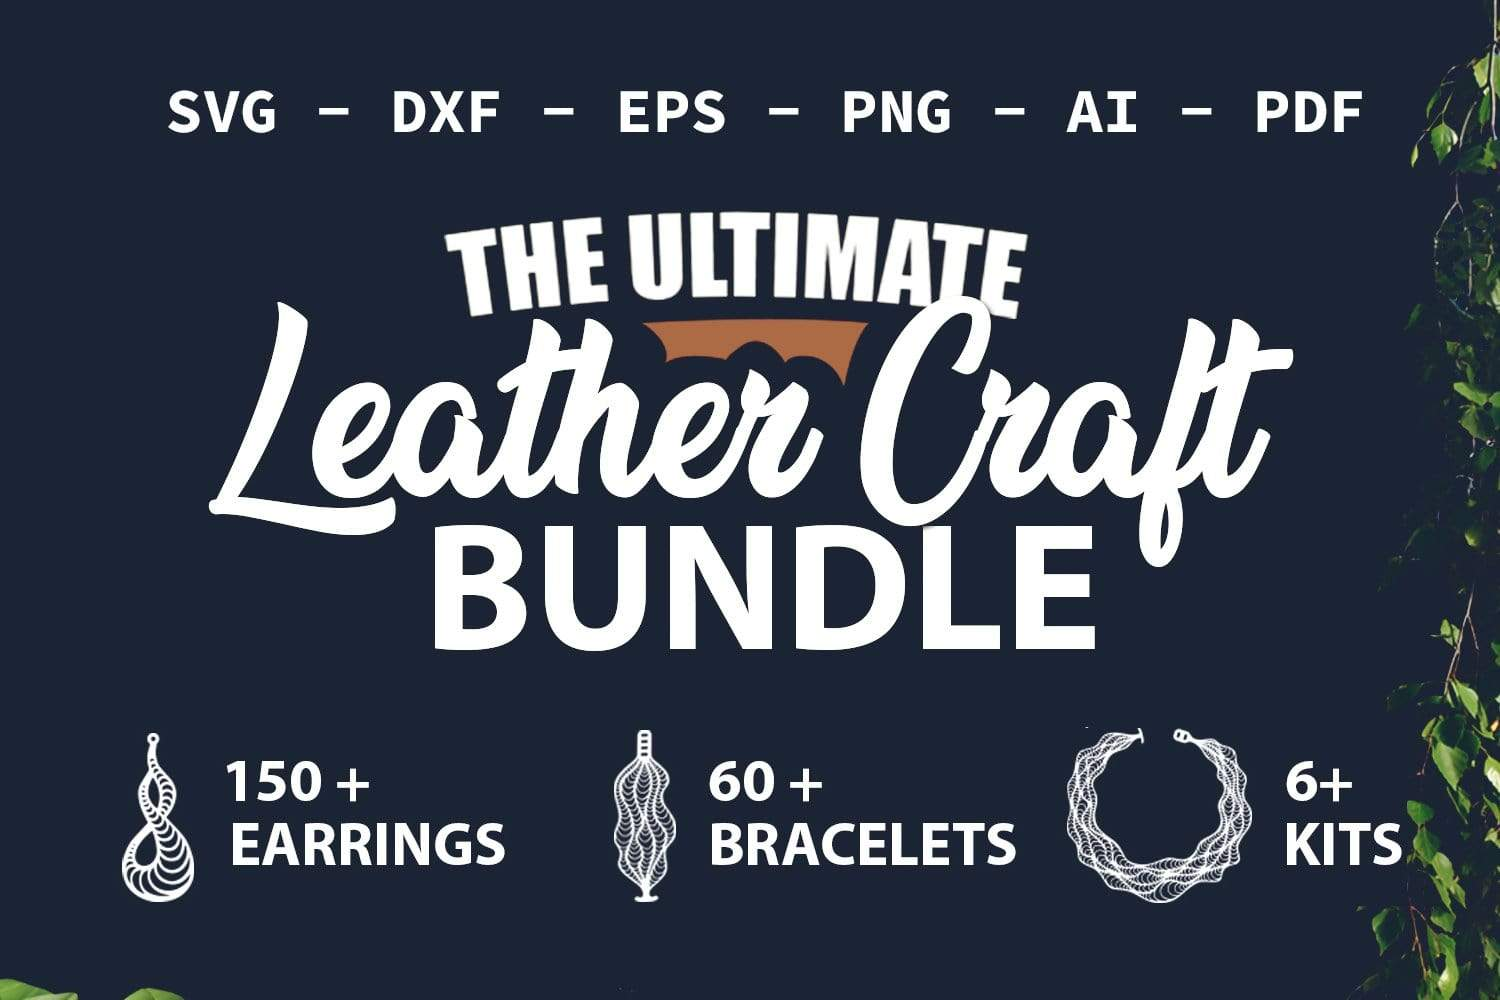 ULTIMATE LEATHER CRAFT BUNDLE - SharpSVG